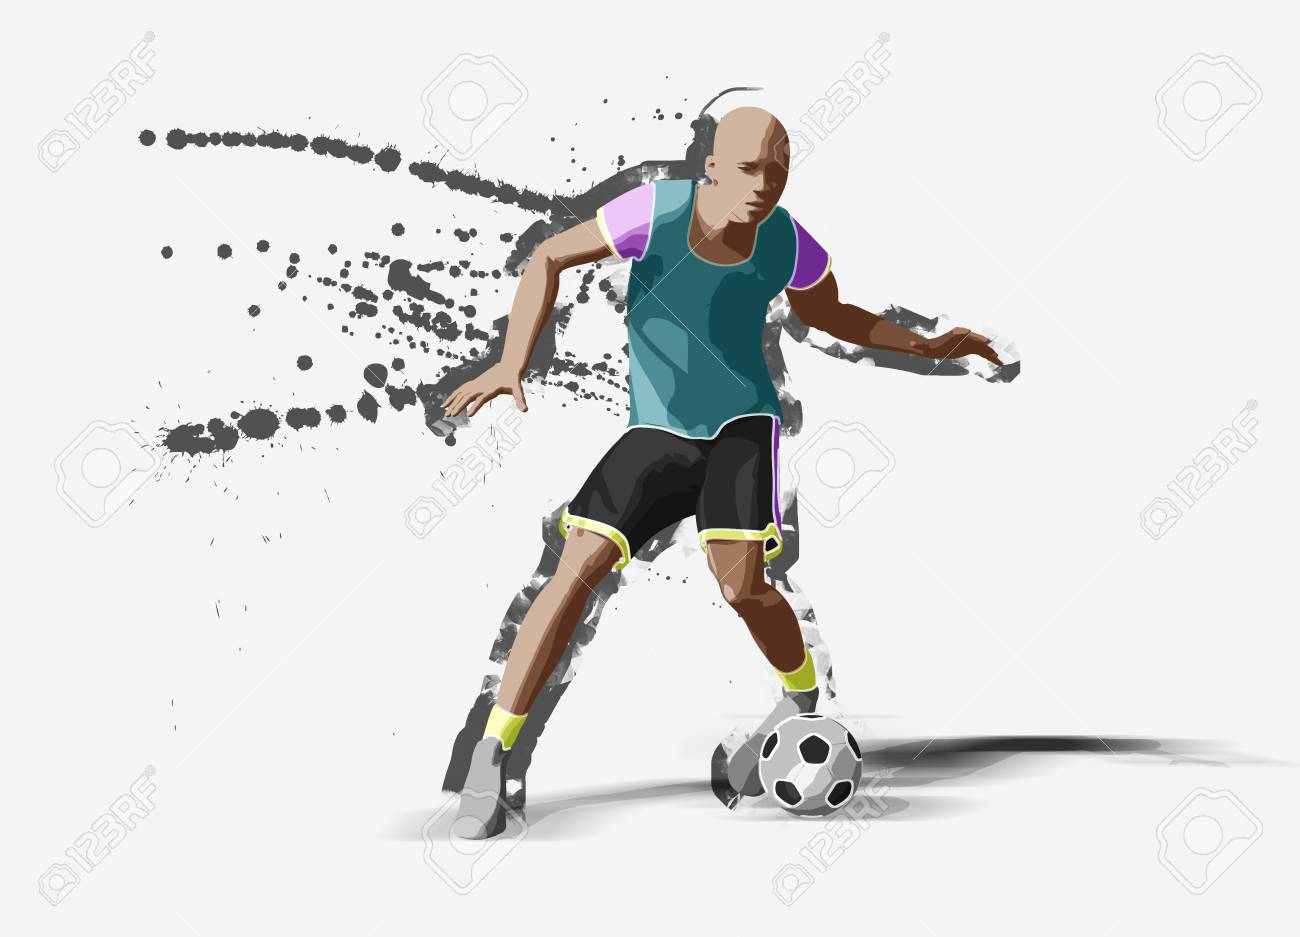 7823847be0 Soccer Player, 3d Rendering Stock Photo, Picture And Royalty Free ...